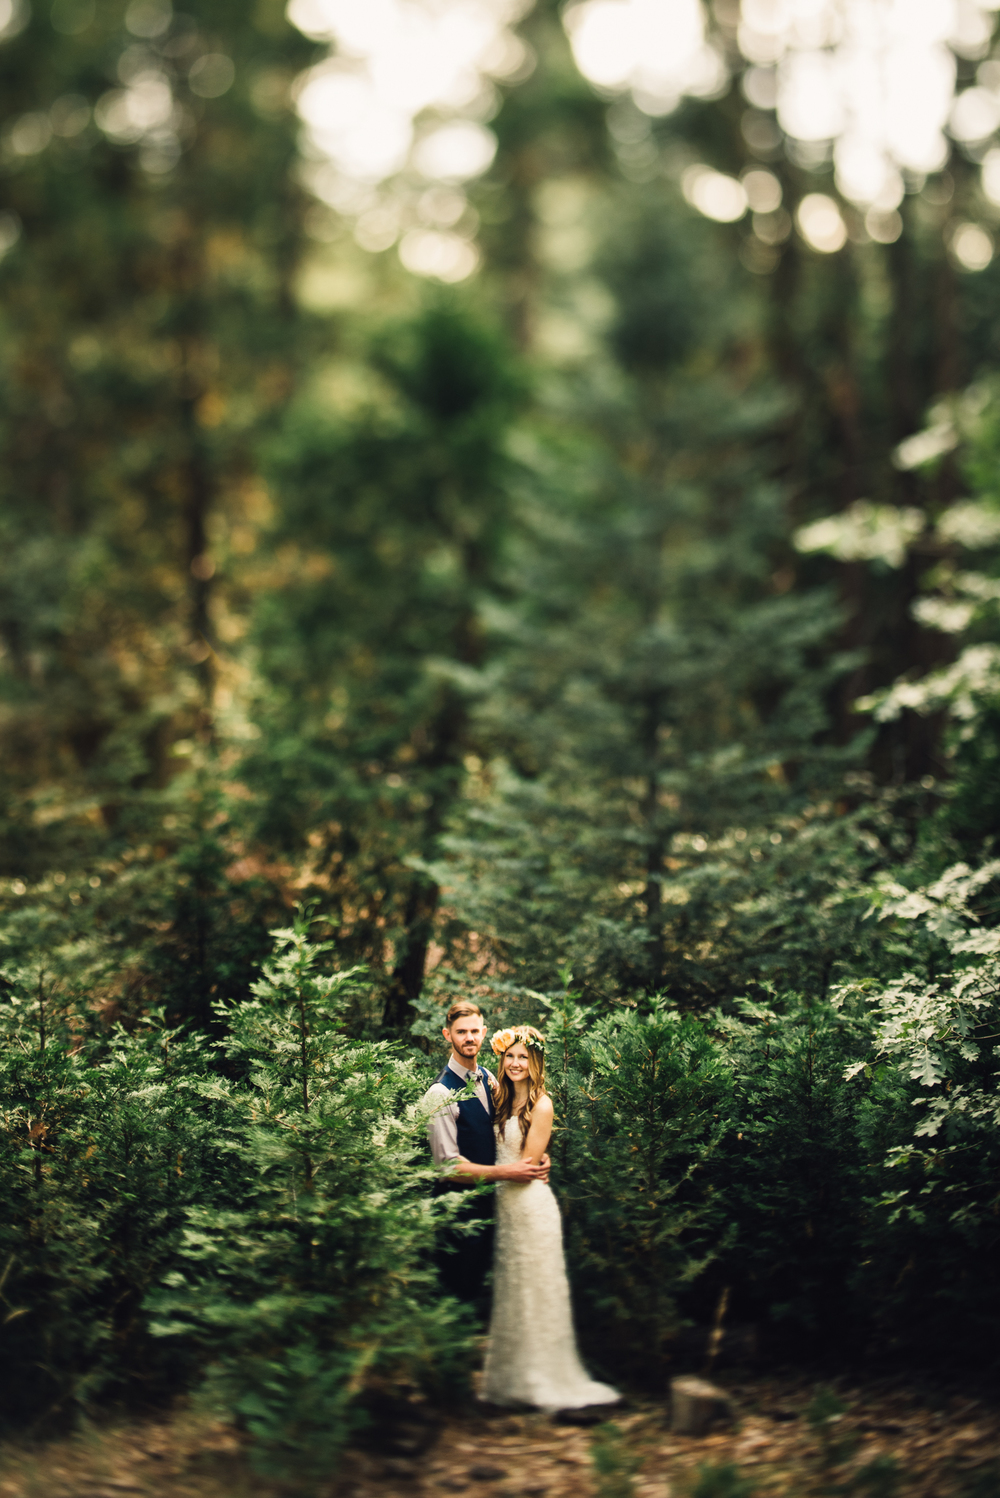 ©Isaiah & Taylor Photography - Pine Rose Cabin - Lake Arrowhead - Los Angeles Wedding Photographer-072.jpg